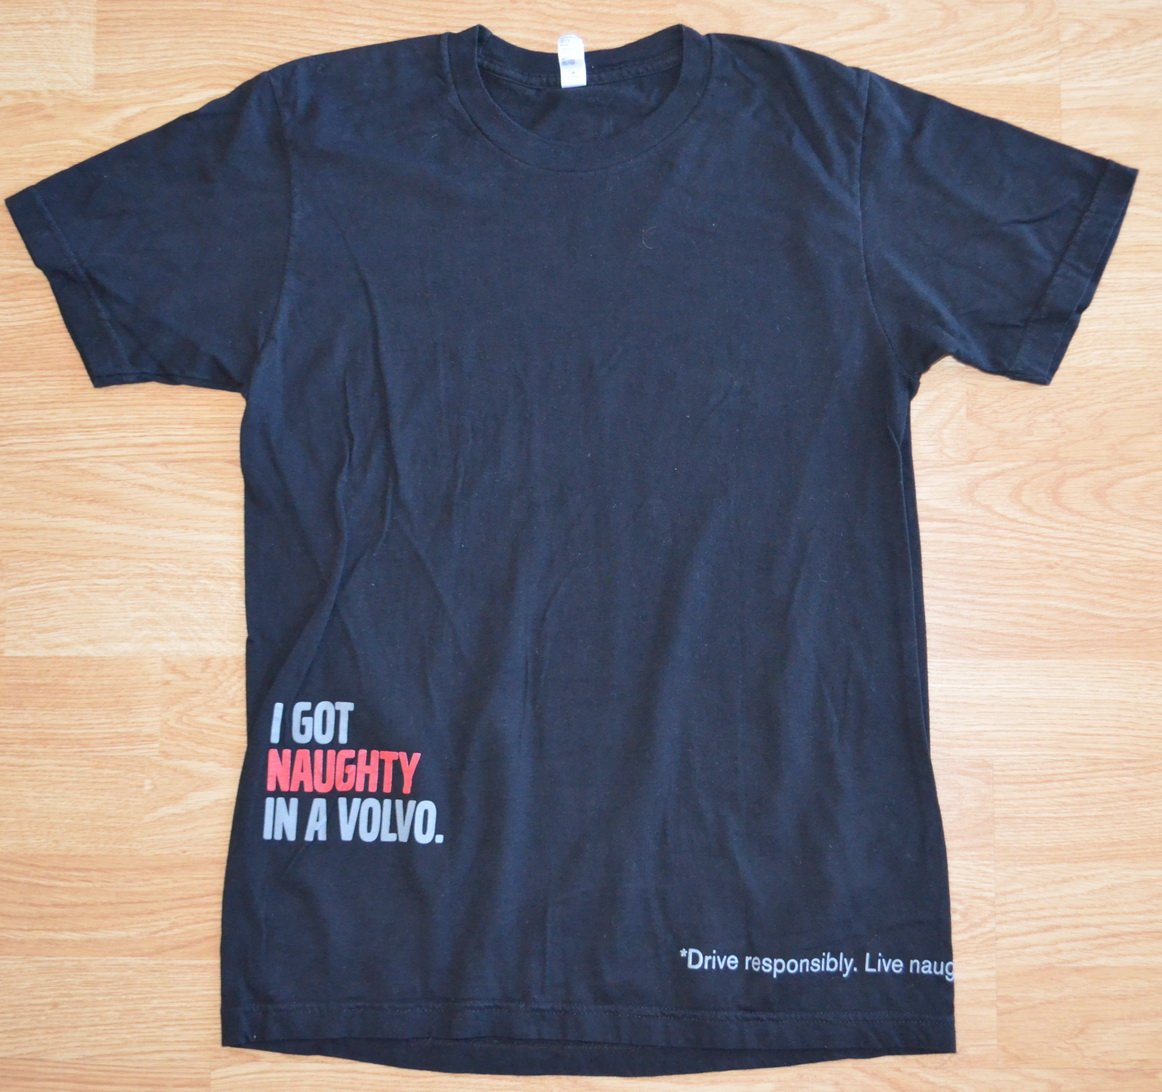 N957 T-shirt AMERICAN APPAREL Size M Made in USA